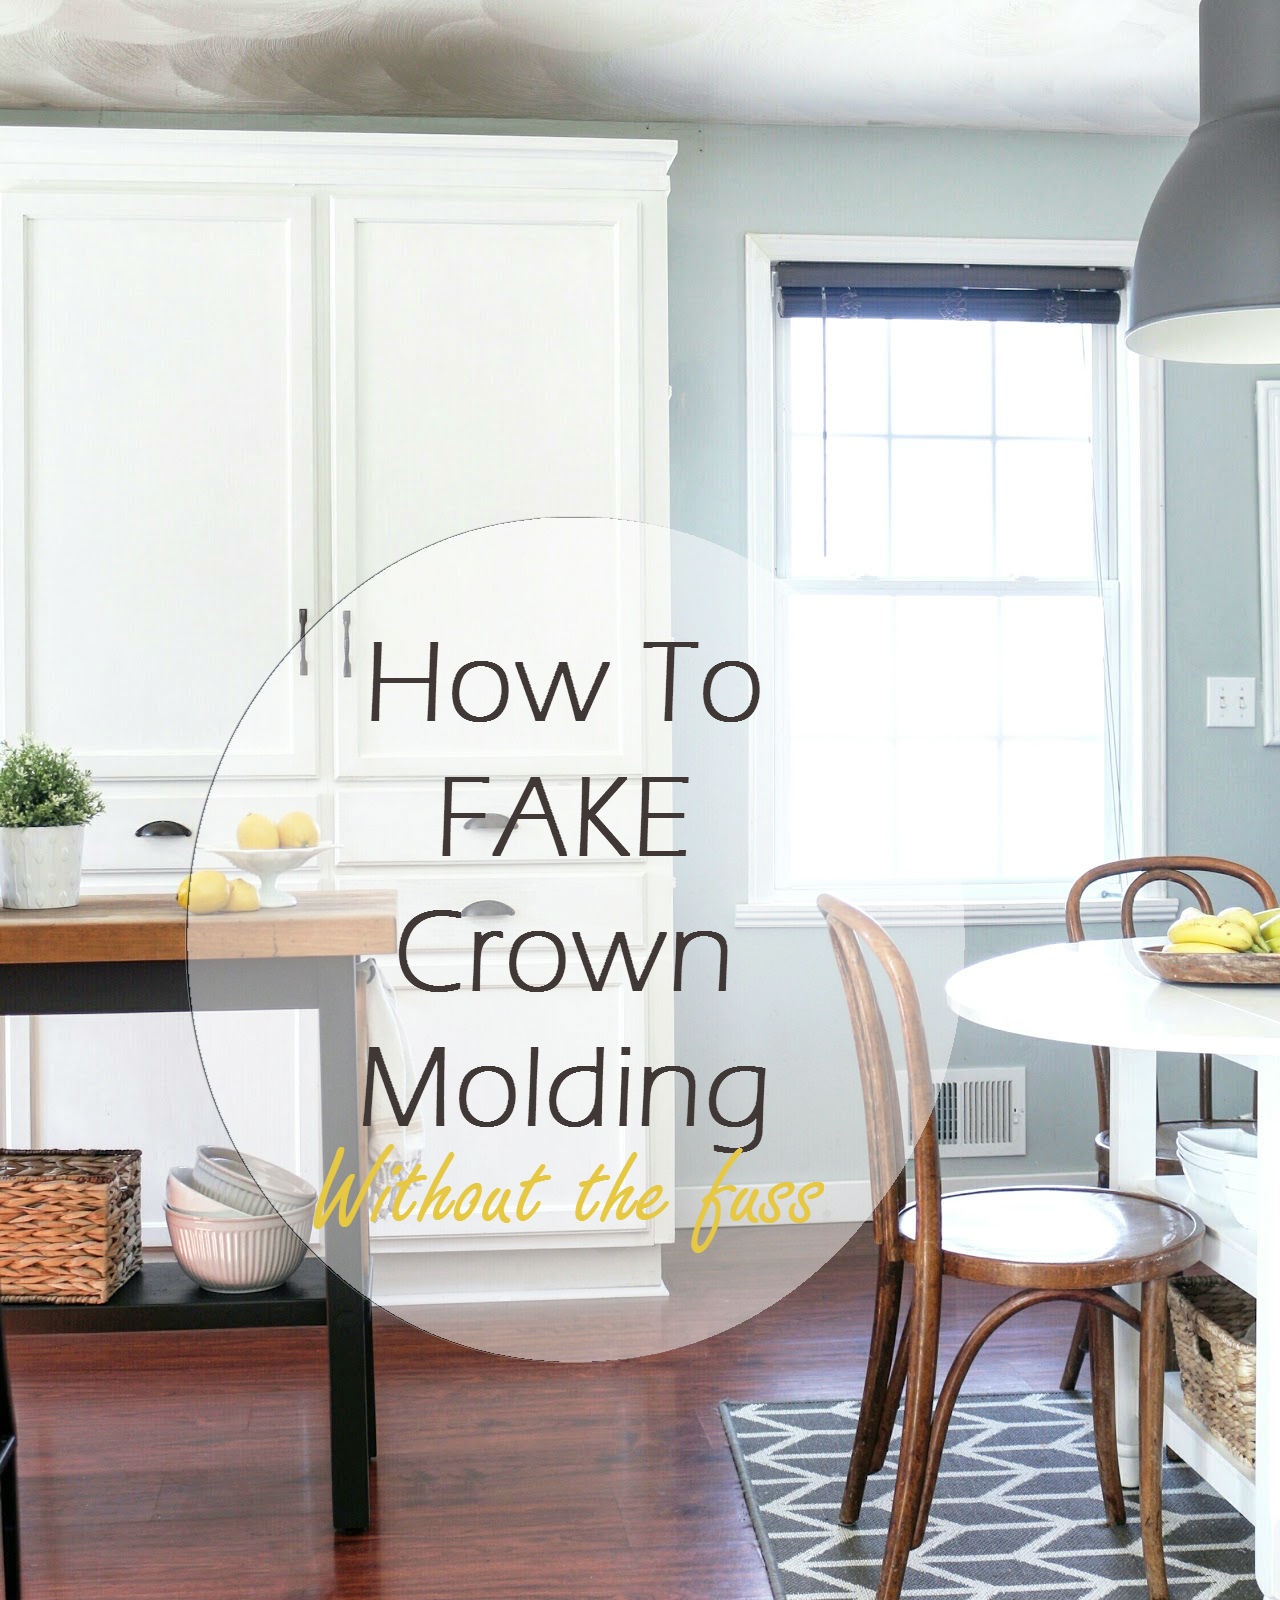 My DIY Kitchen: Cabinet Crown Molding, How To Fake The Look Without The Fuss